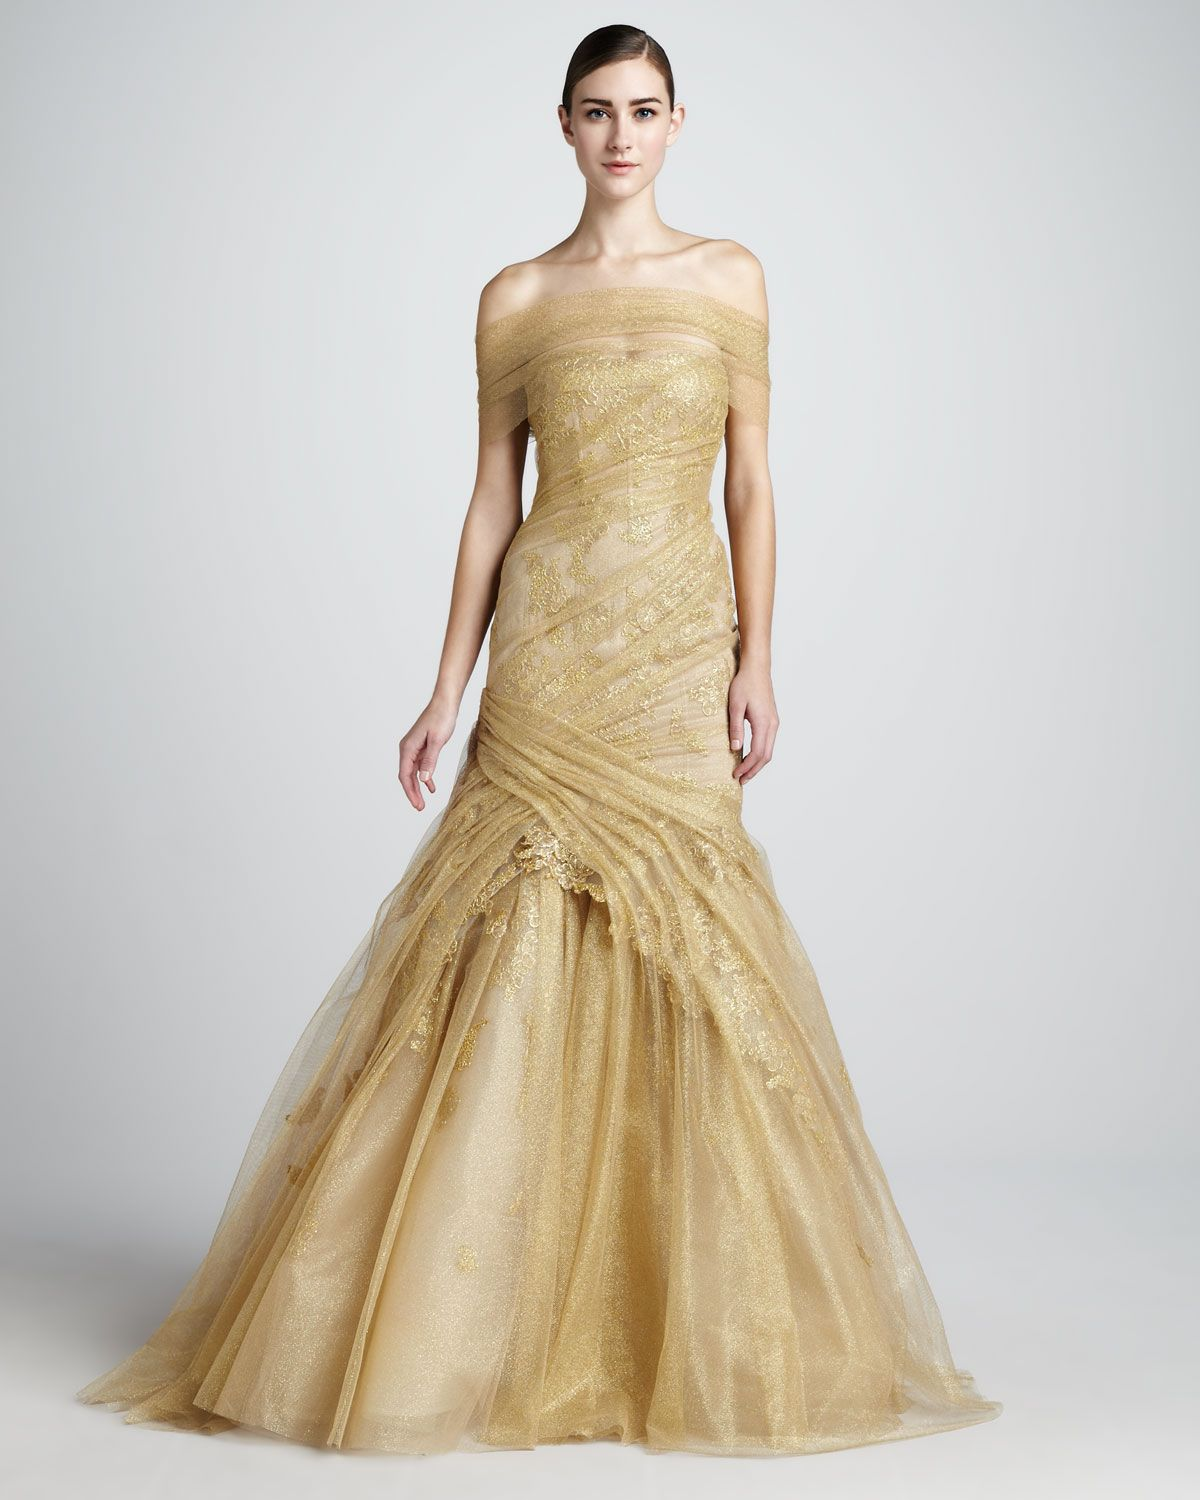 Monique Lhuillier Gold Ruched Lace Off Shoulder Trumpet Couture Gown